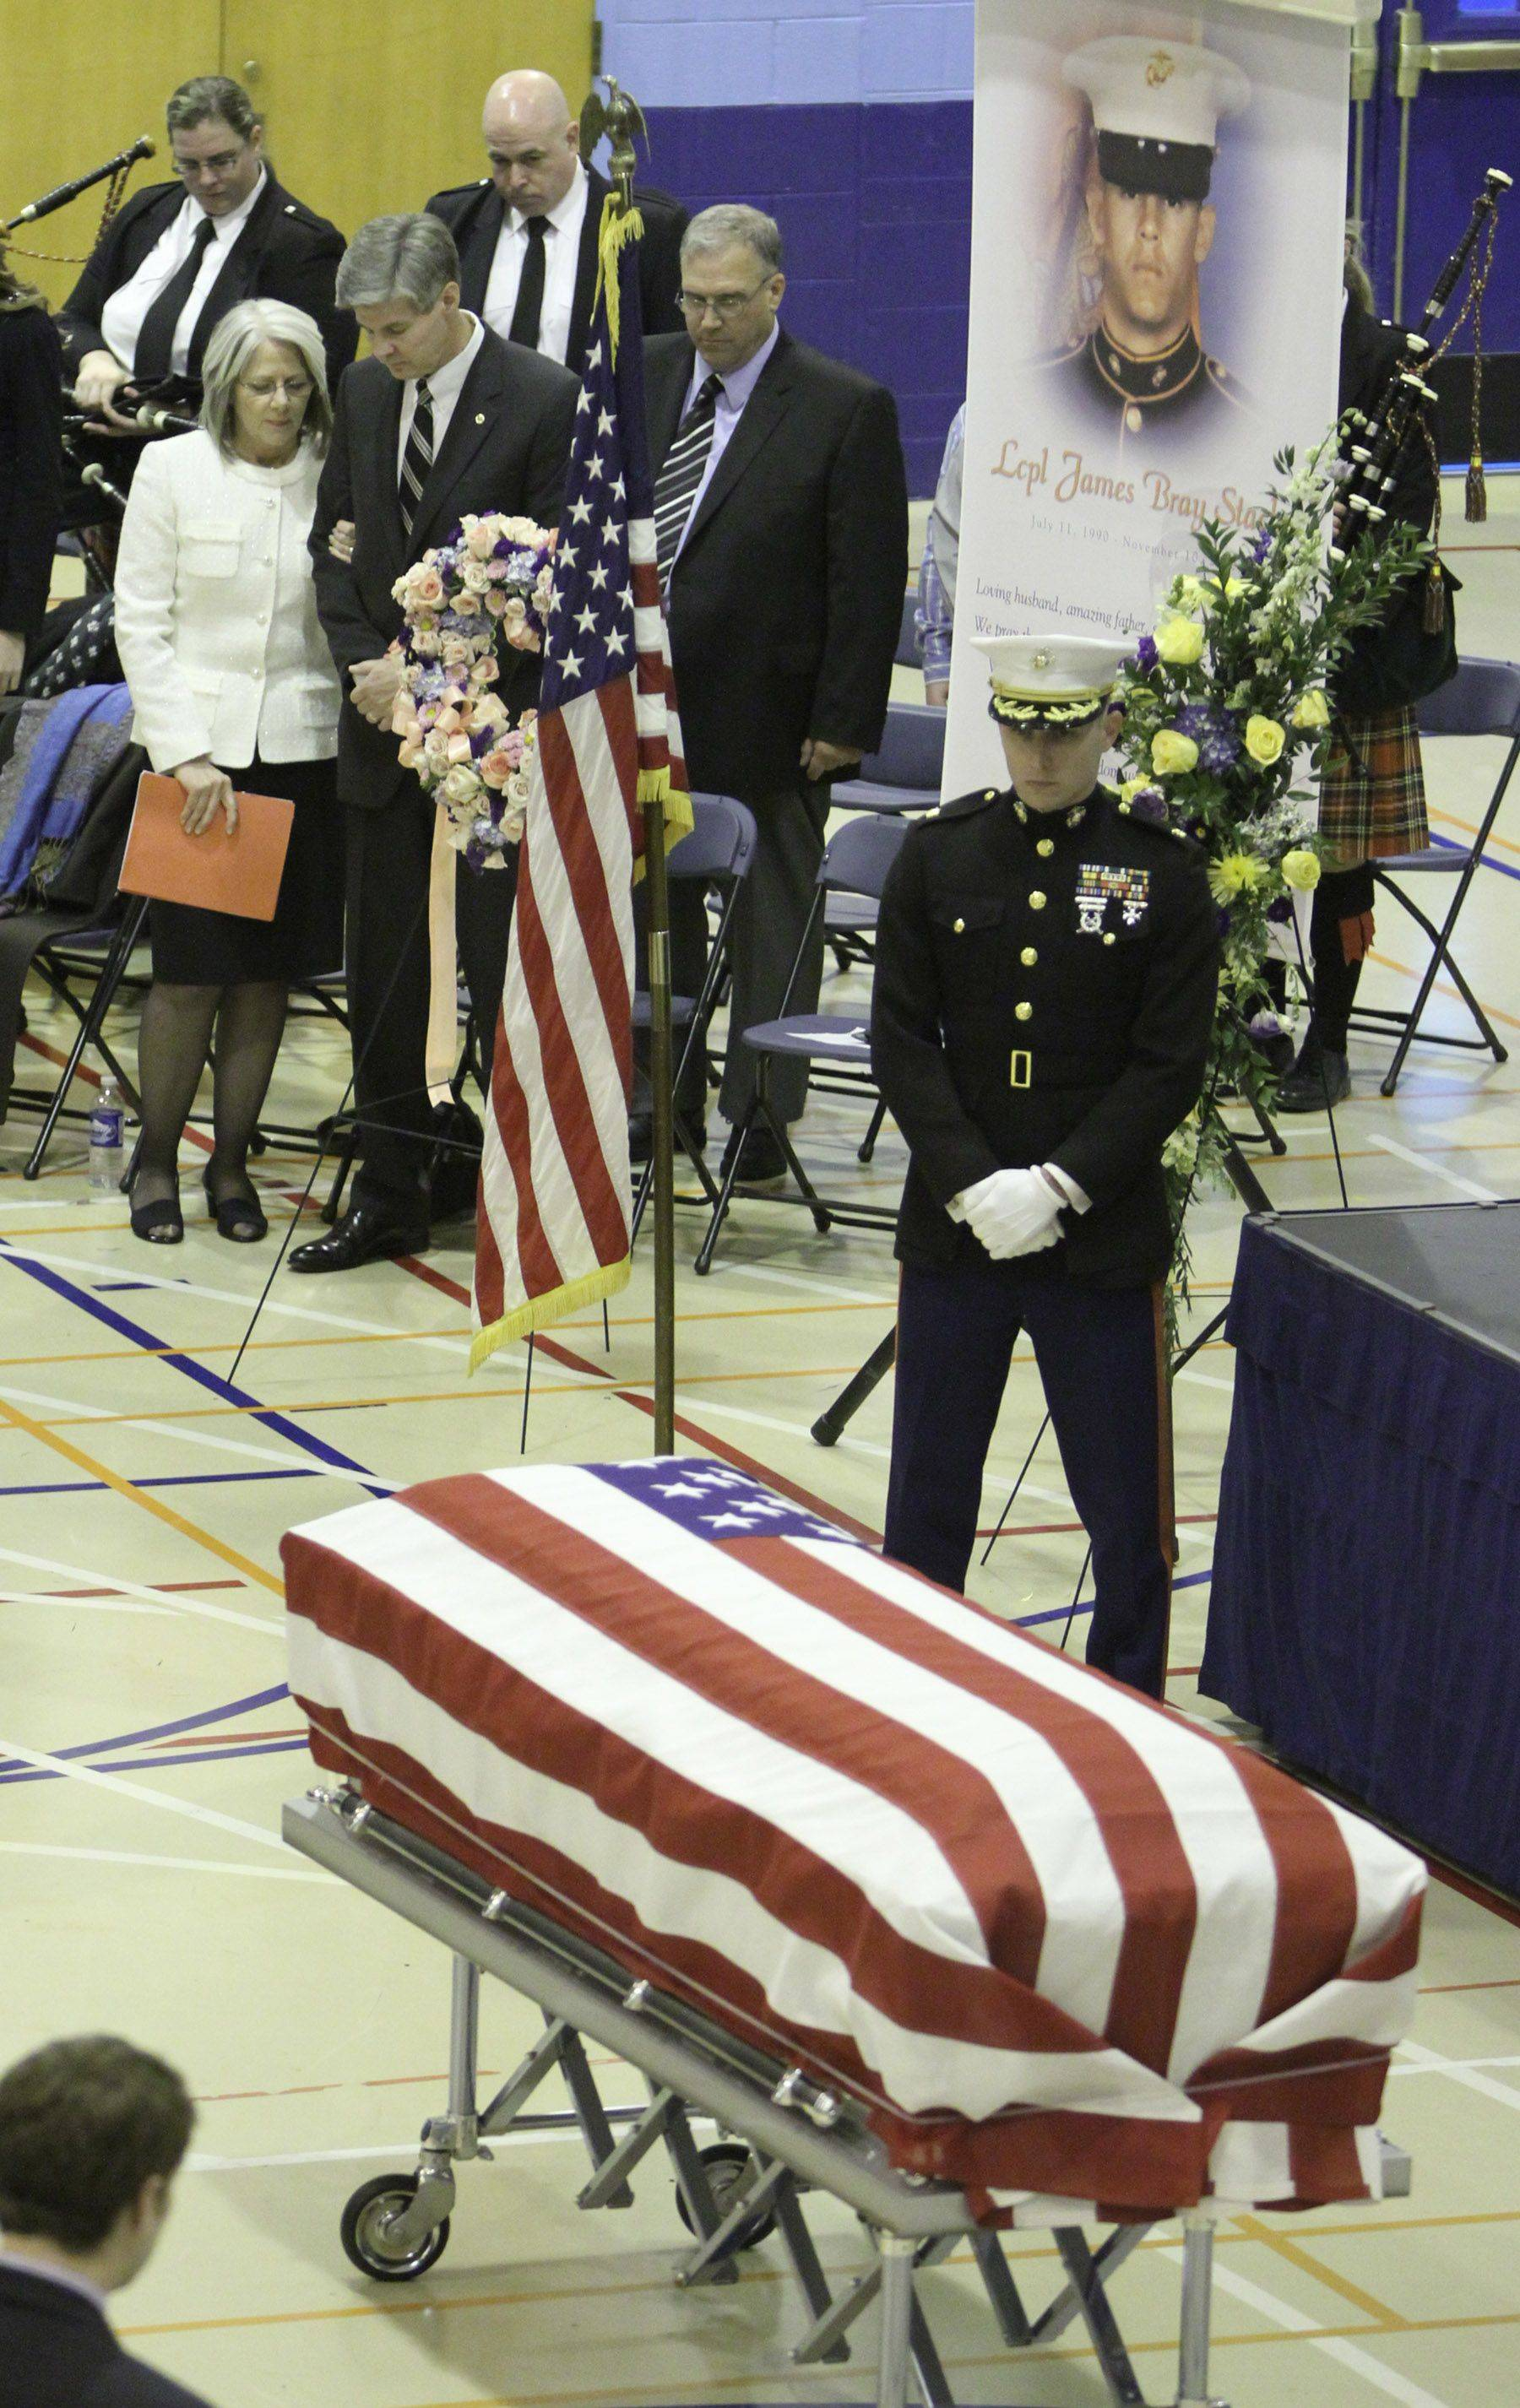 Services at Prospect High School field house for 20-year-old Marine James Bray Stack, from Arlington Heights who was killed in Afghanistan last week. Stack was buried with full military honors in Memory Gardens Cemetery in Arlington Heights. Saturday, November 20, 2010.